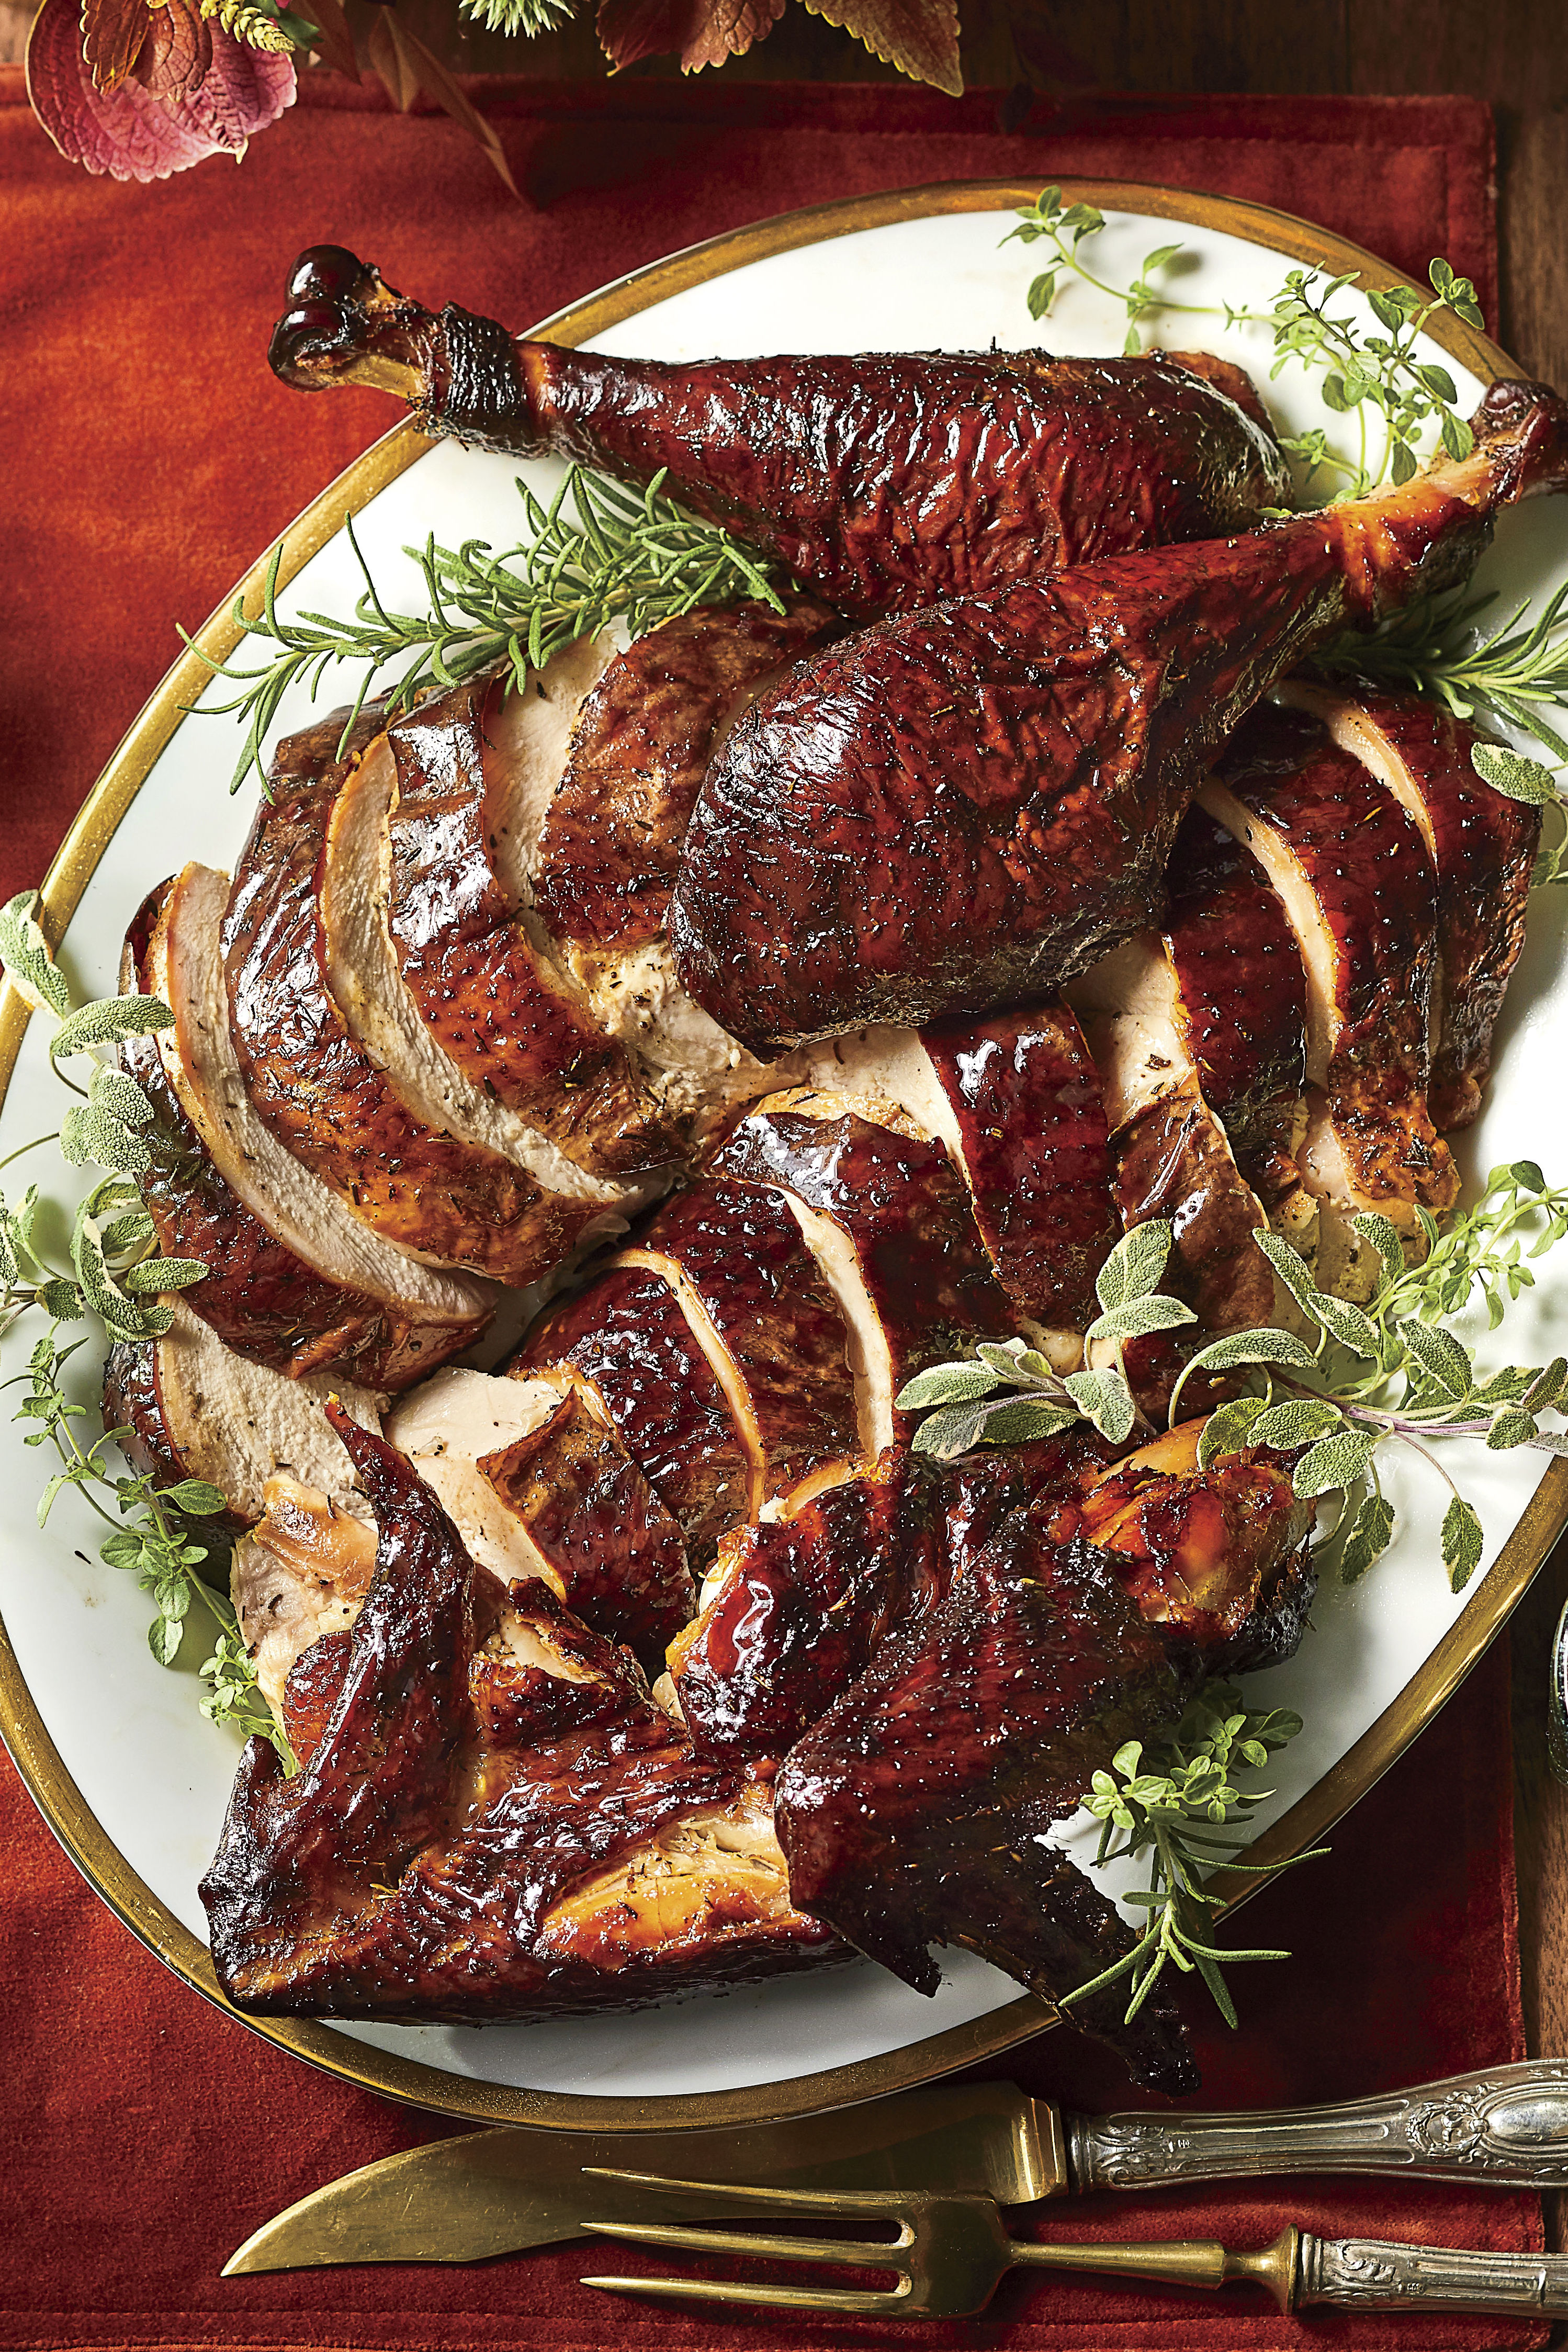 Smoked Turkey Recipe with Herb Rub